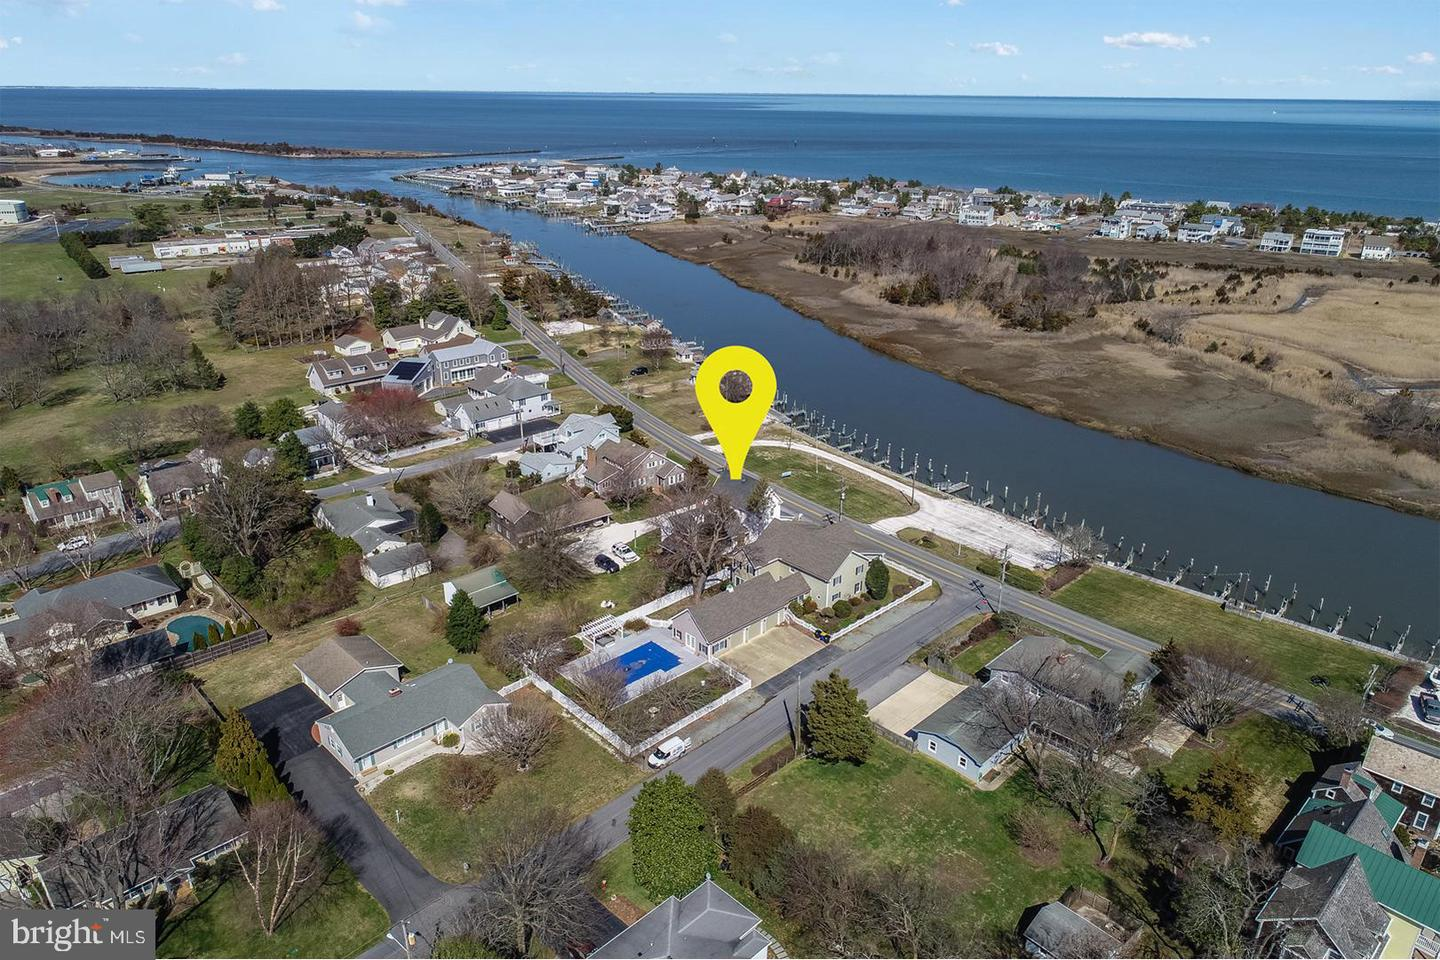 DESU157864-304093905299-2020-07-27-13-28-27 Sold Listings - Rehoboth Beach Real Estate - Bryce Lingo and Shaun Tull REALTORS, Rehoboth Beach, Delaware